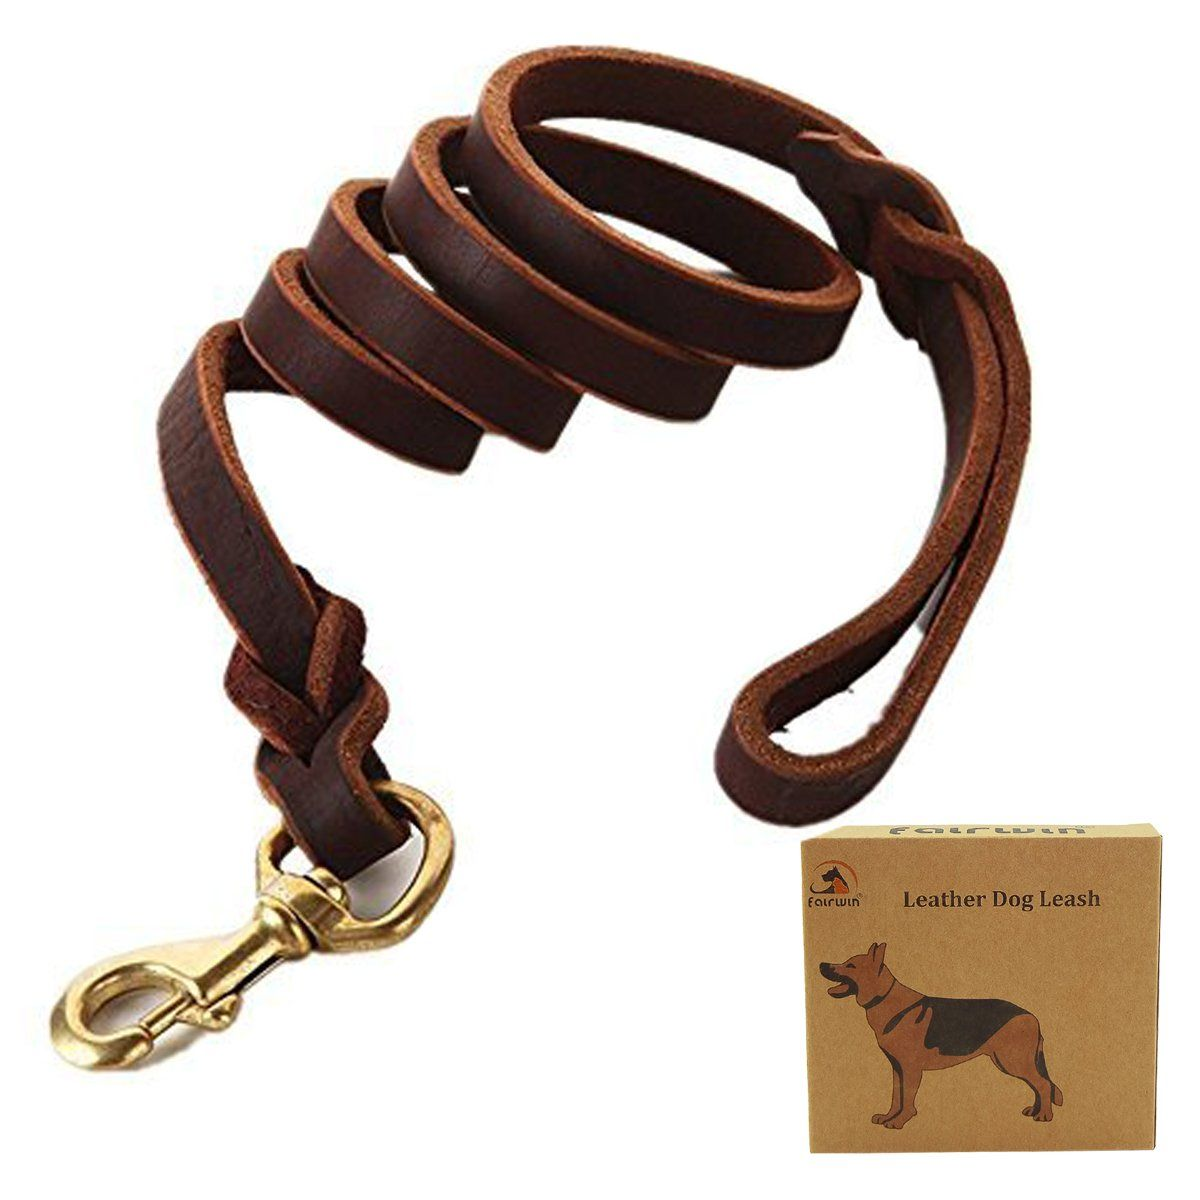 Fairwin Braided Leather Dog Leash 6 Ft K9 Walking Training Leads